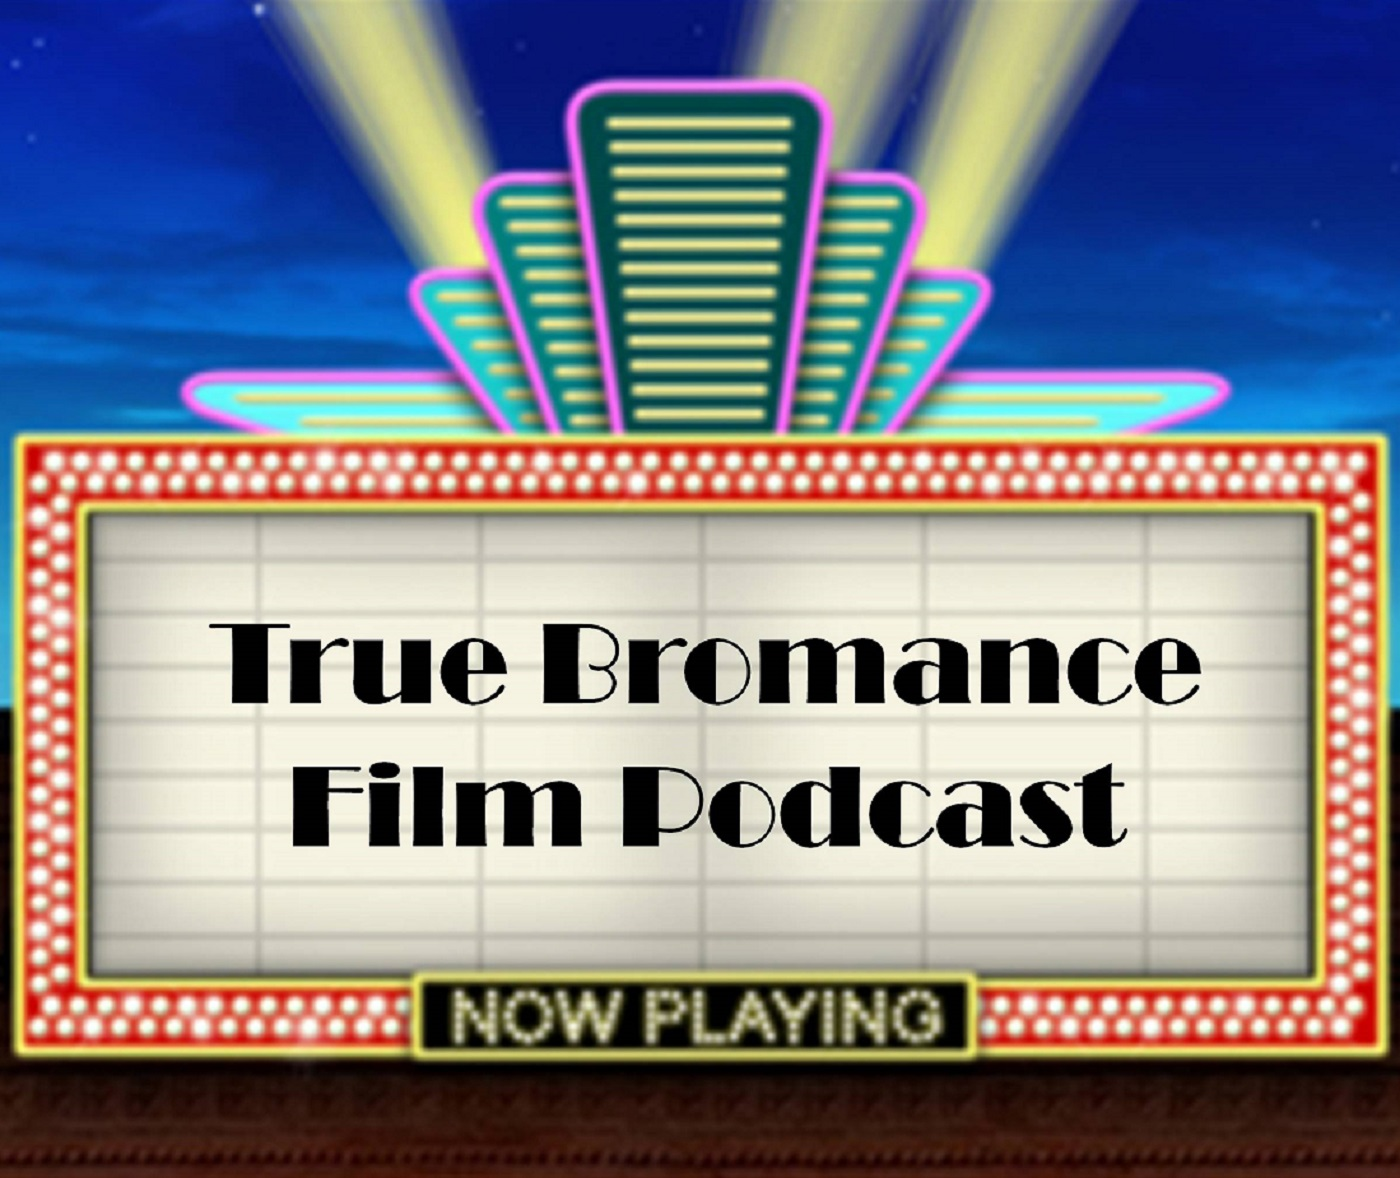 True Romance / Top 5 Films of 2014 (Midway)